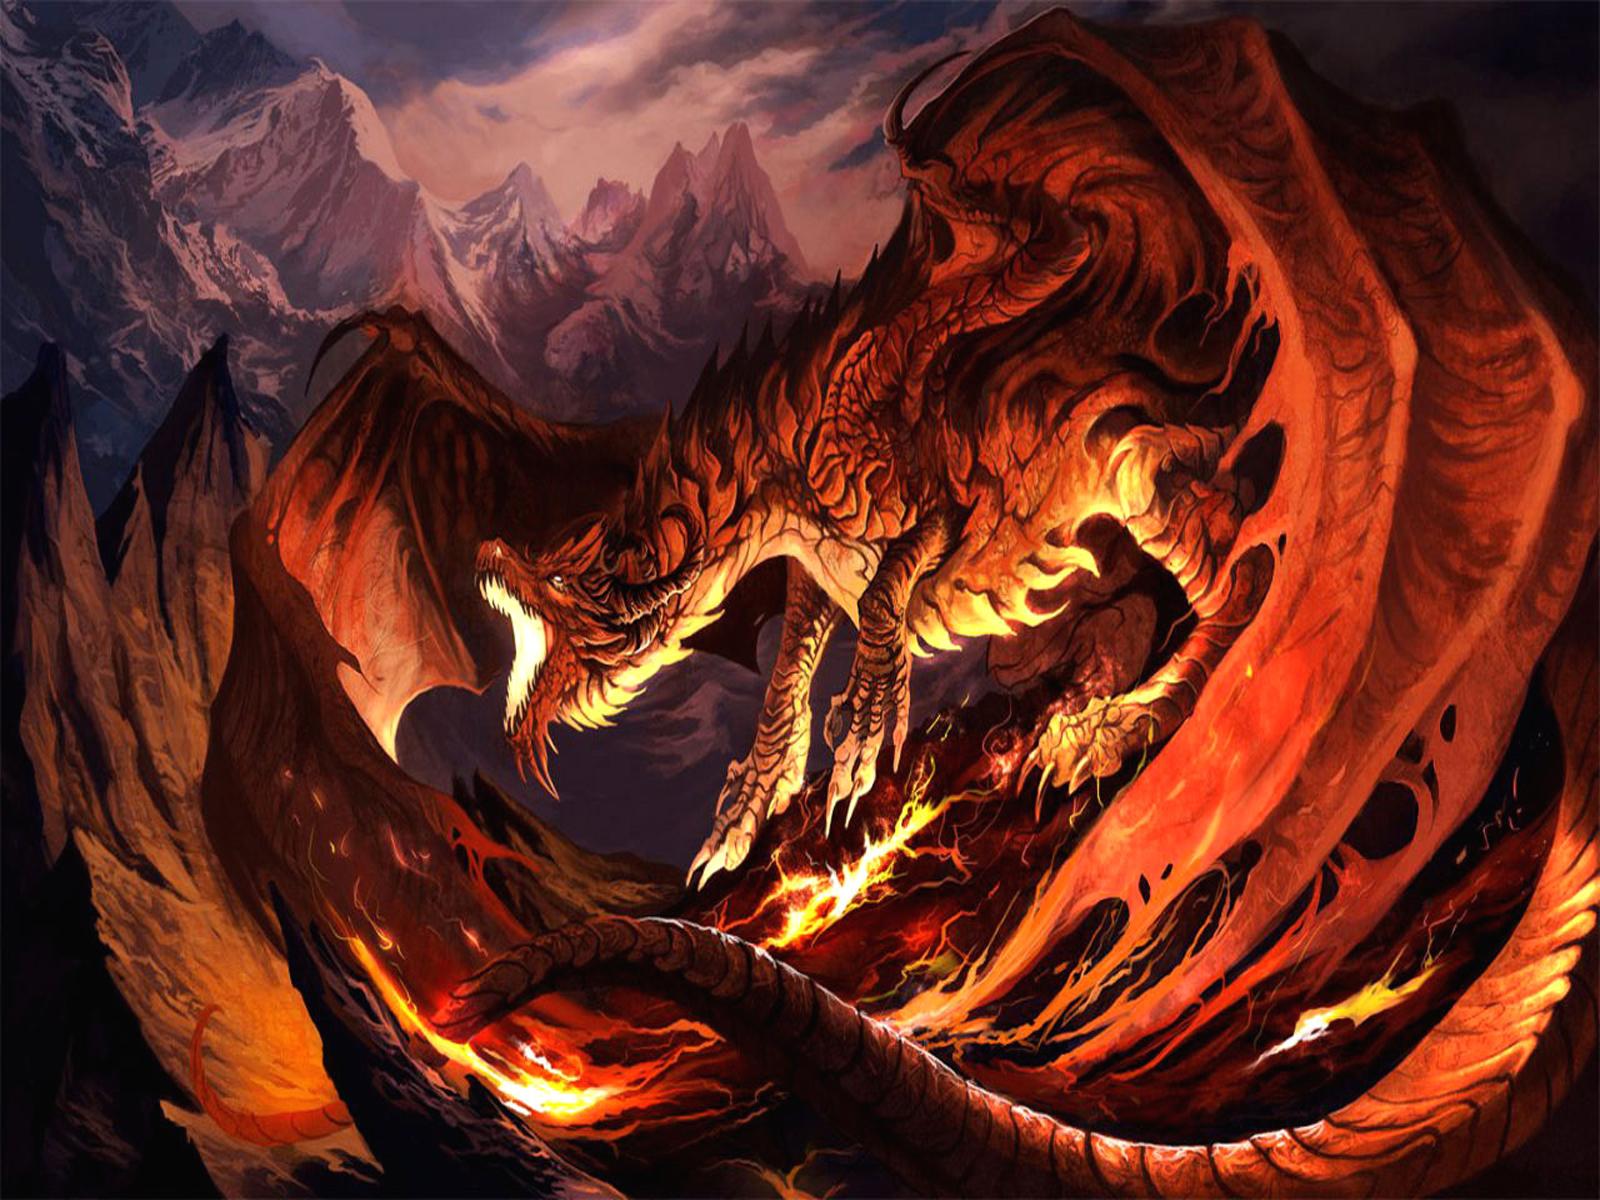 Fantasy - Dragon  - Fire - Orange - Black - Red - Power - Strength - Wings Wallpaper